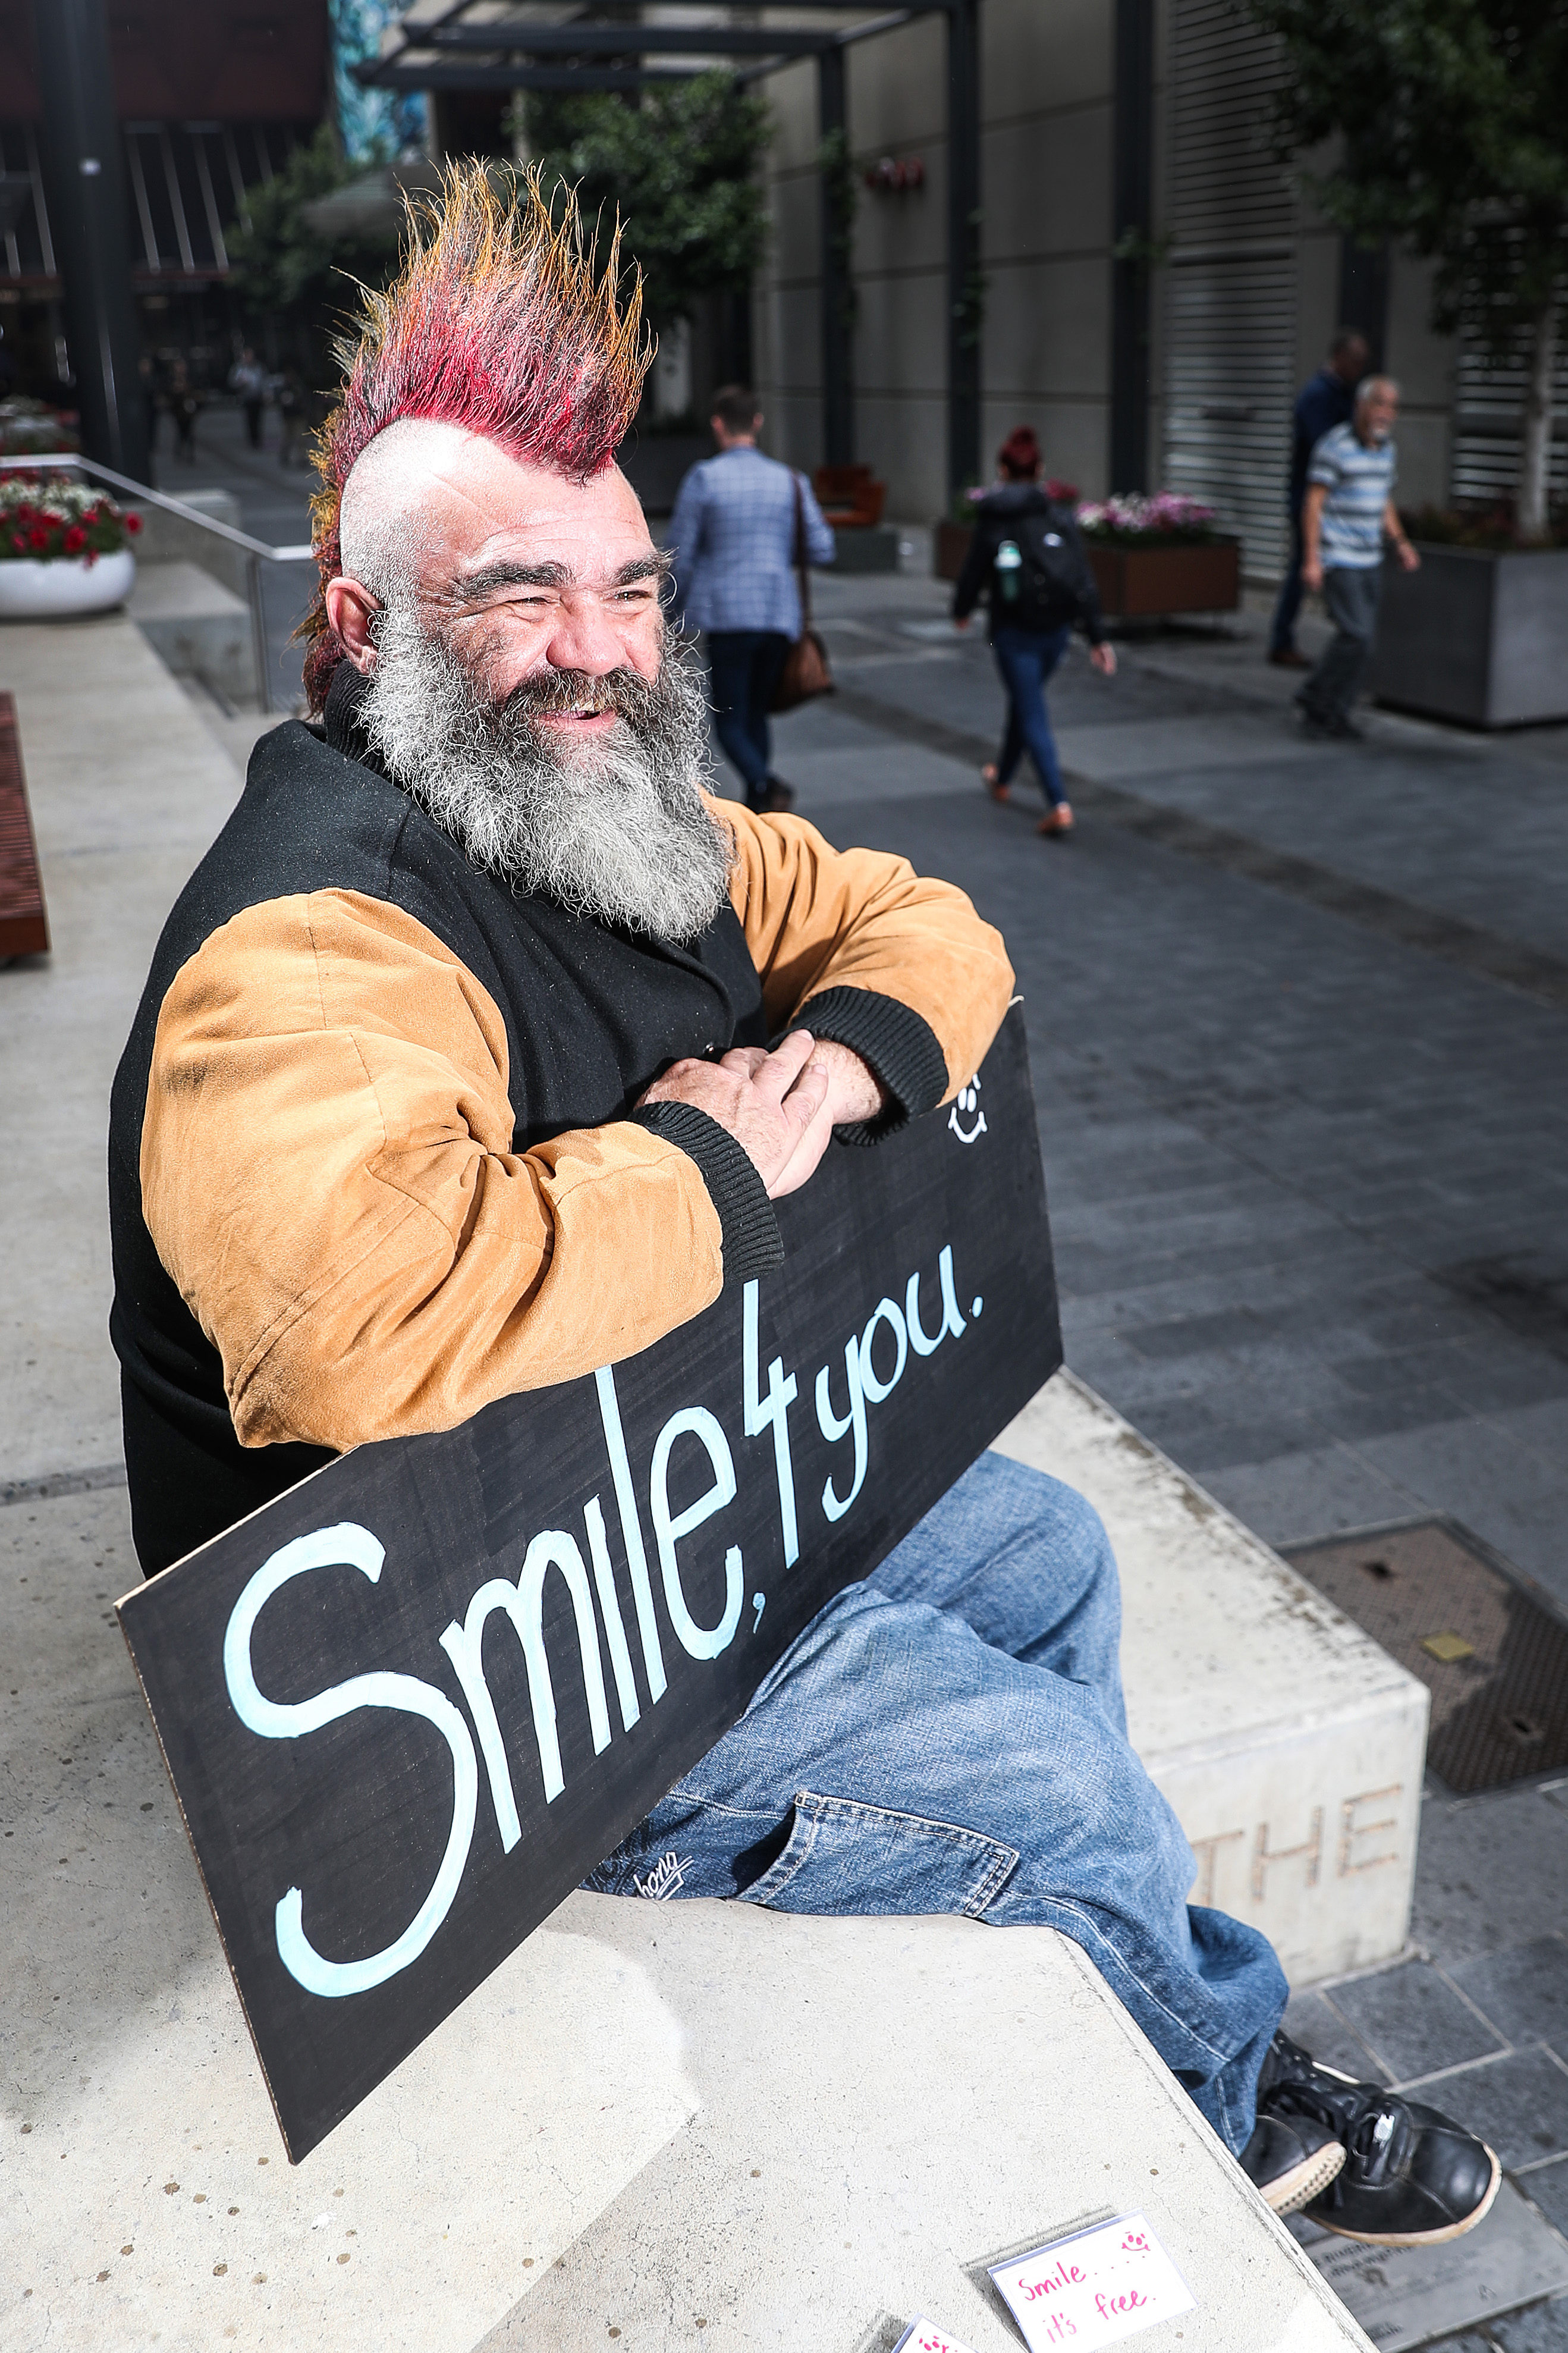 Stephen sits with his smile sign in the Adelaide CBD